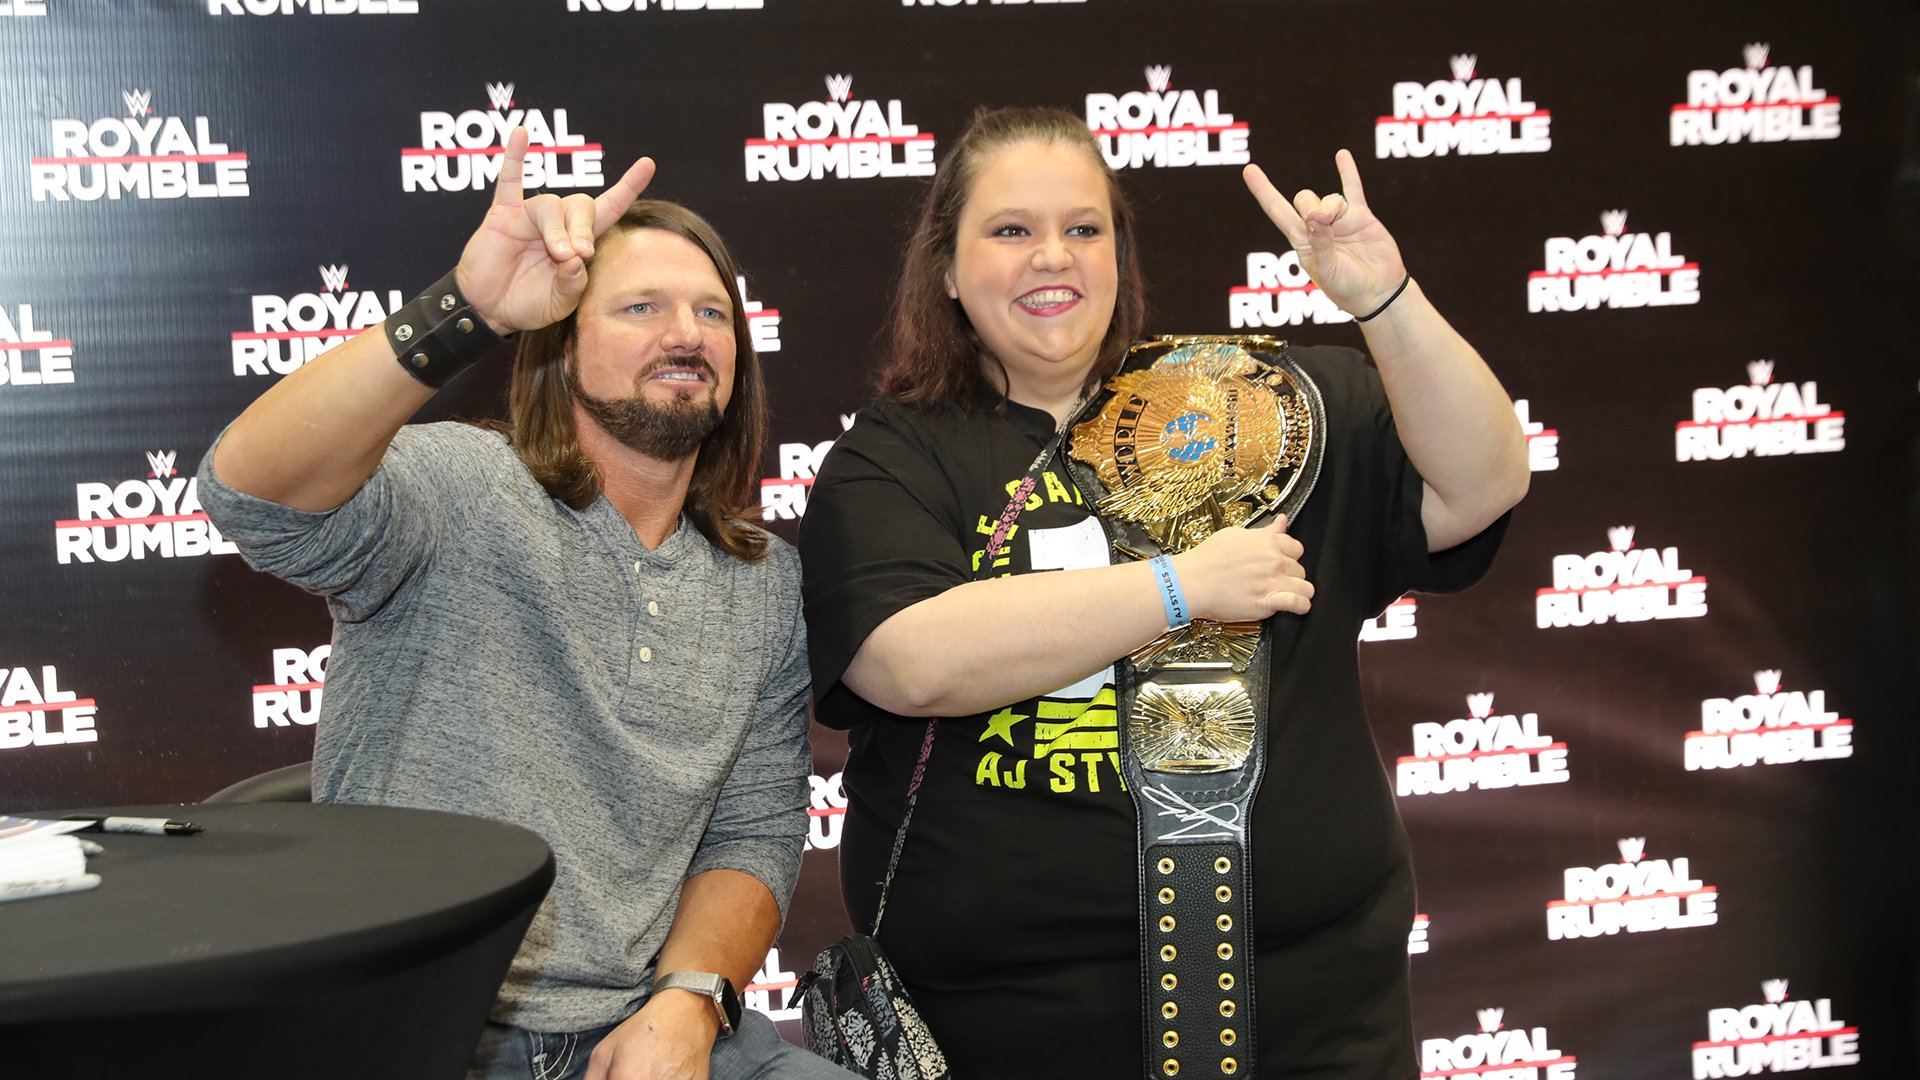 Royal Rumble Axxess 2019 - Day 2, Session 1: photos